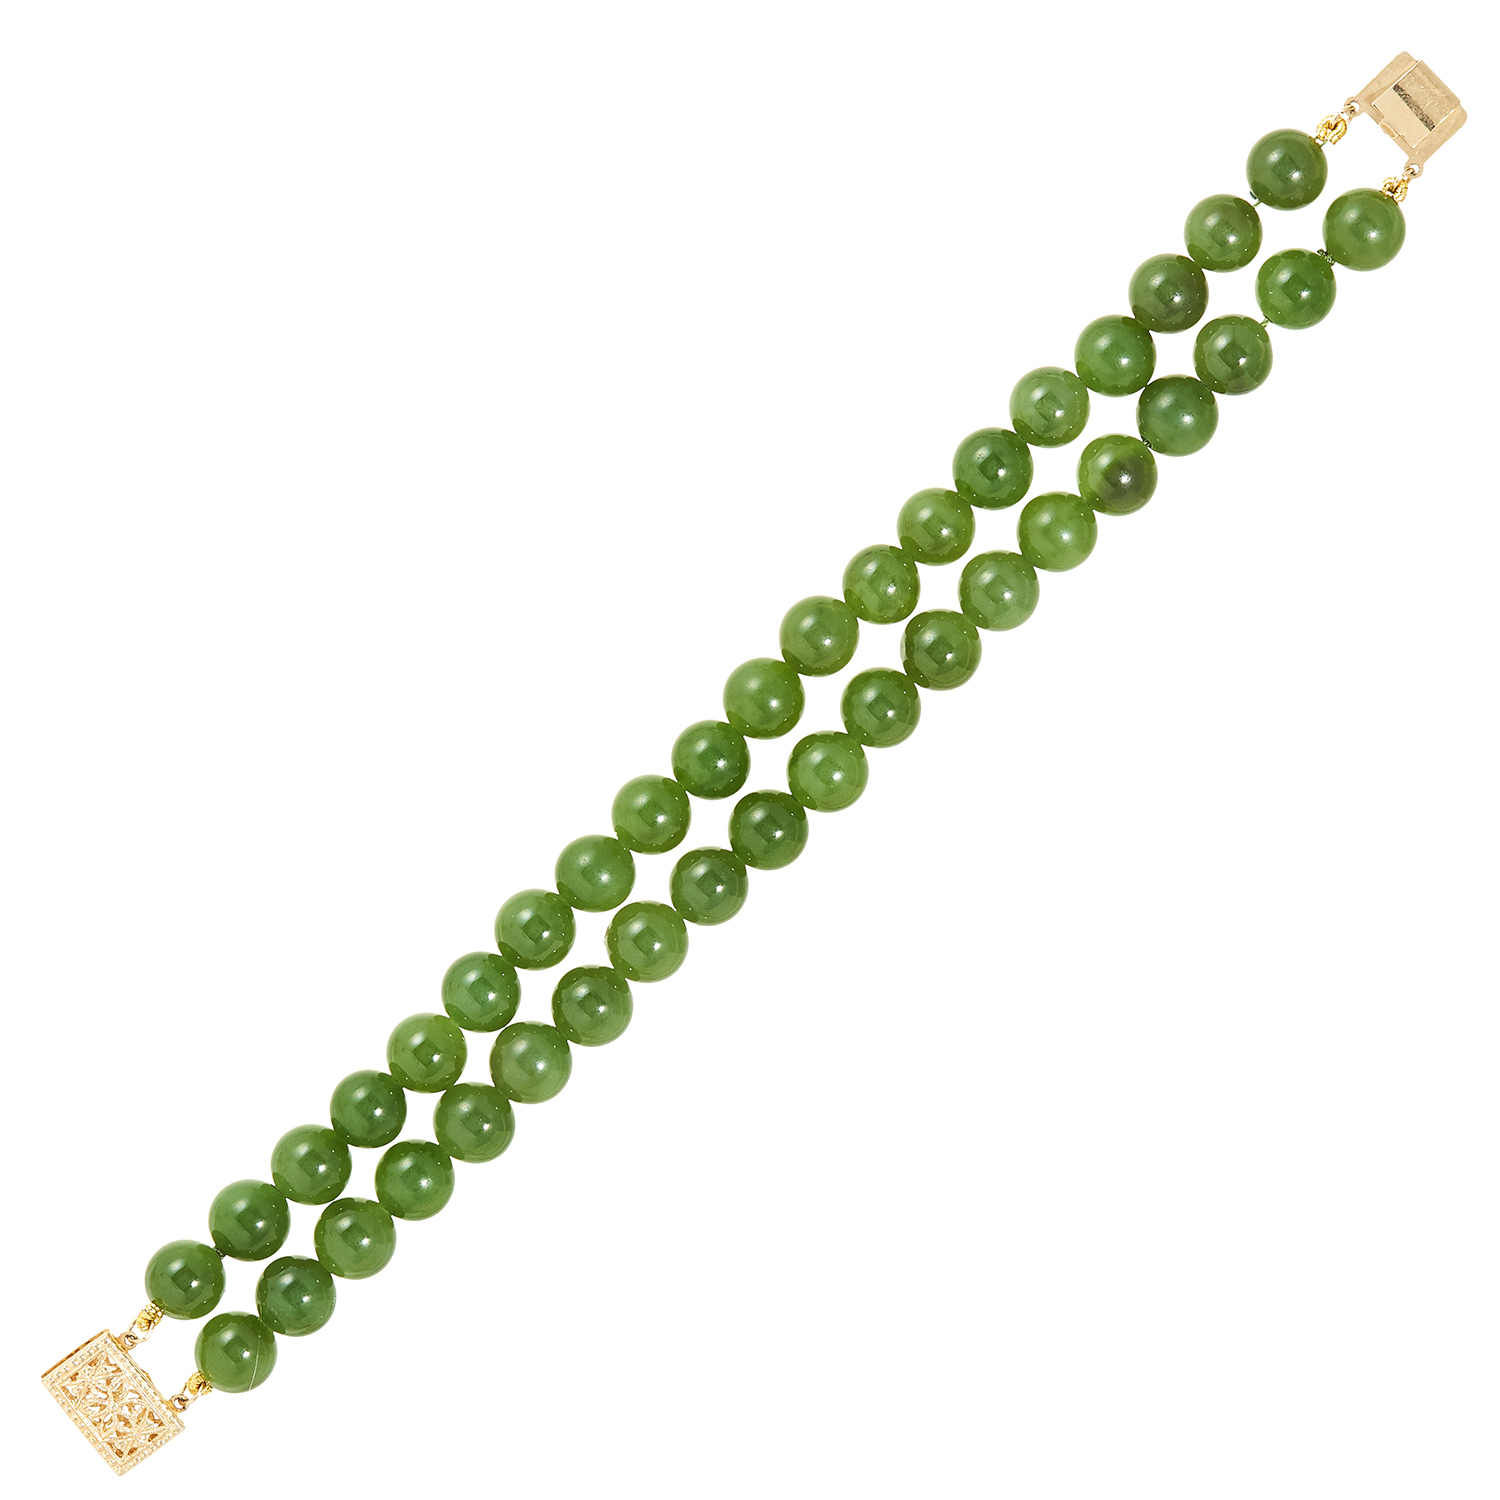 Los 15 - JADE BEAD BRACELET comprising of two rows of polished jade beads, 17cm, 31.81g.